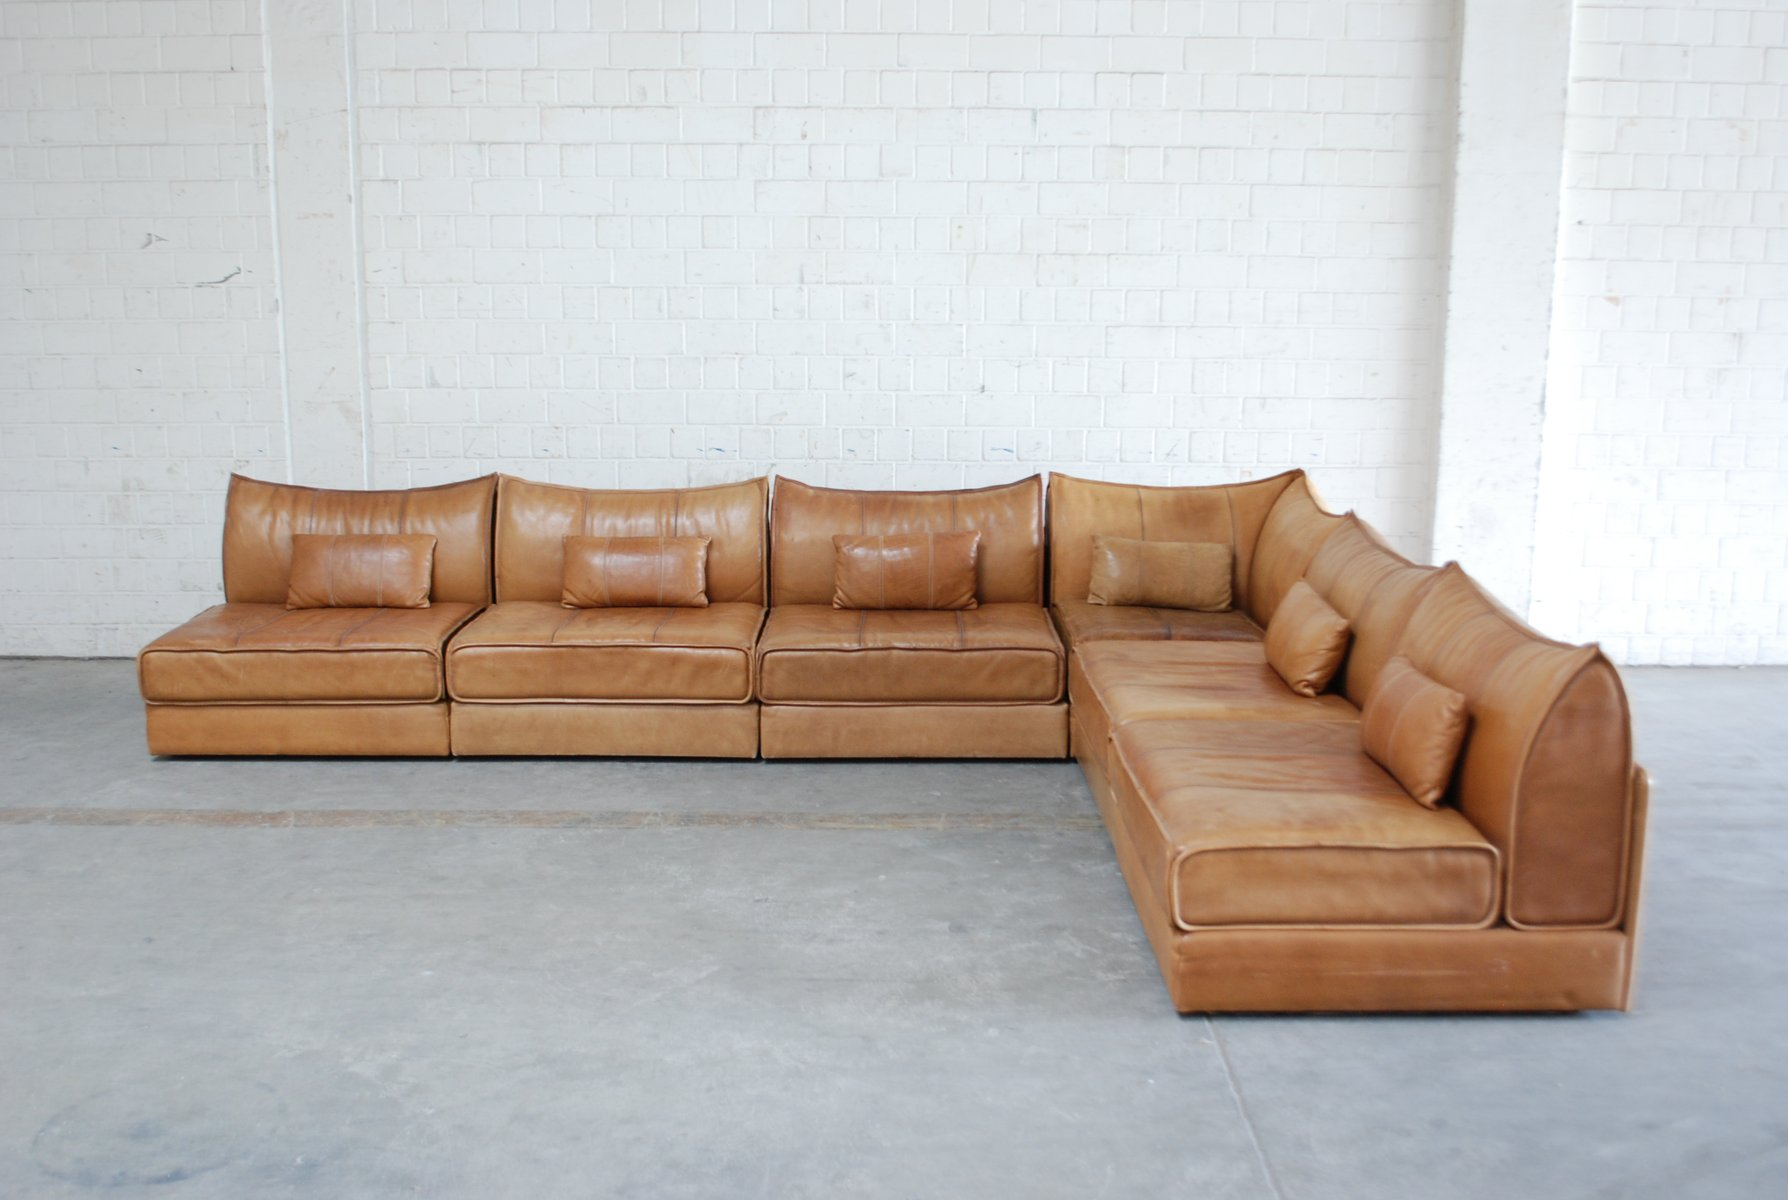 sofa army germany new model wood sets images vintage modular ds 19 in cognac leather from de sede